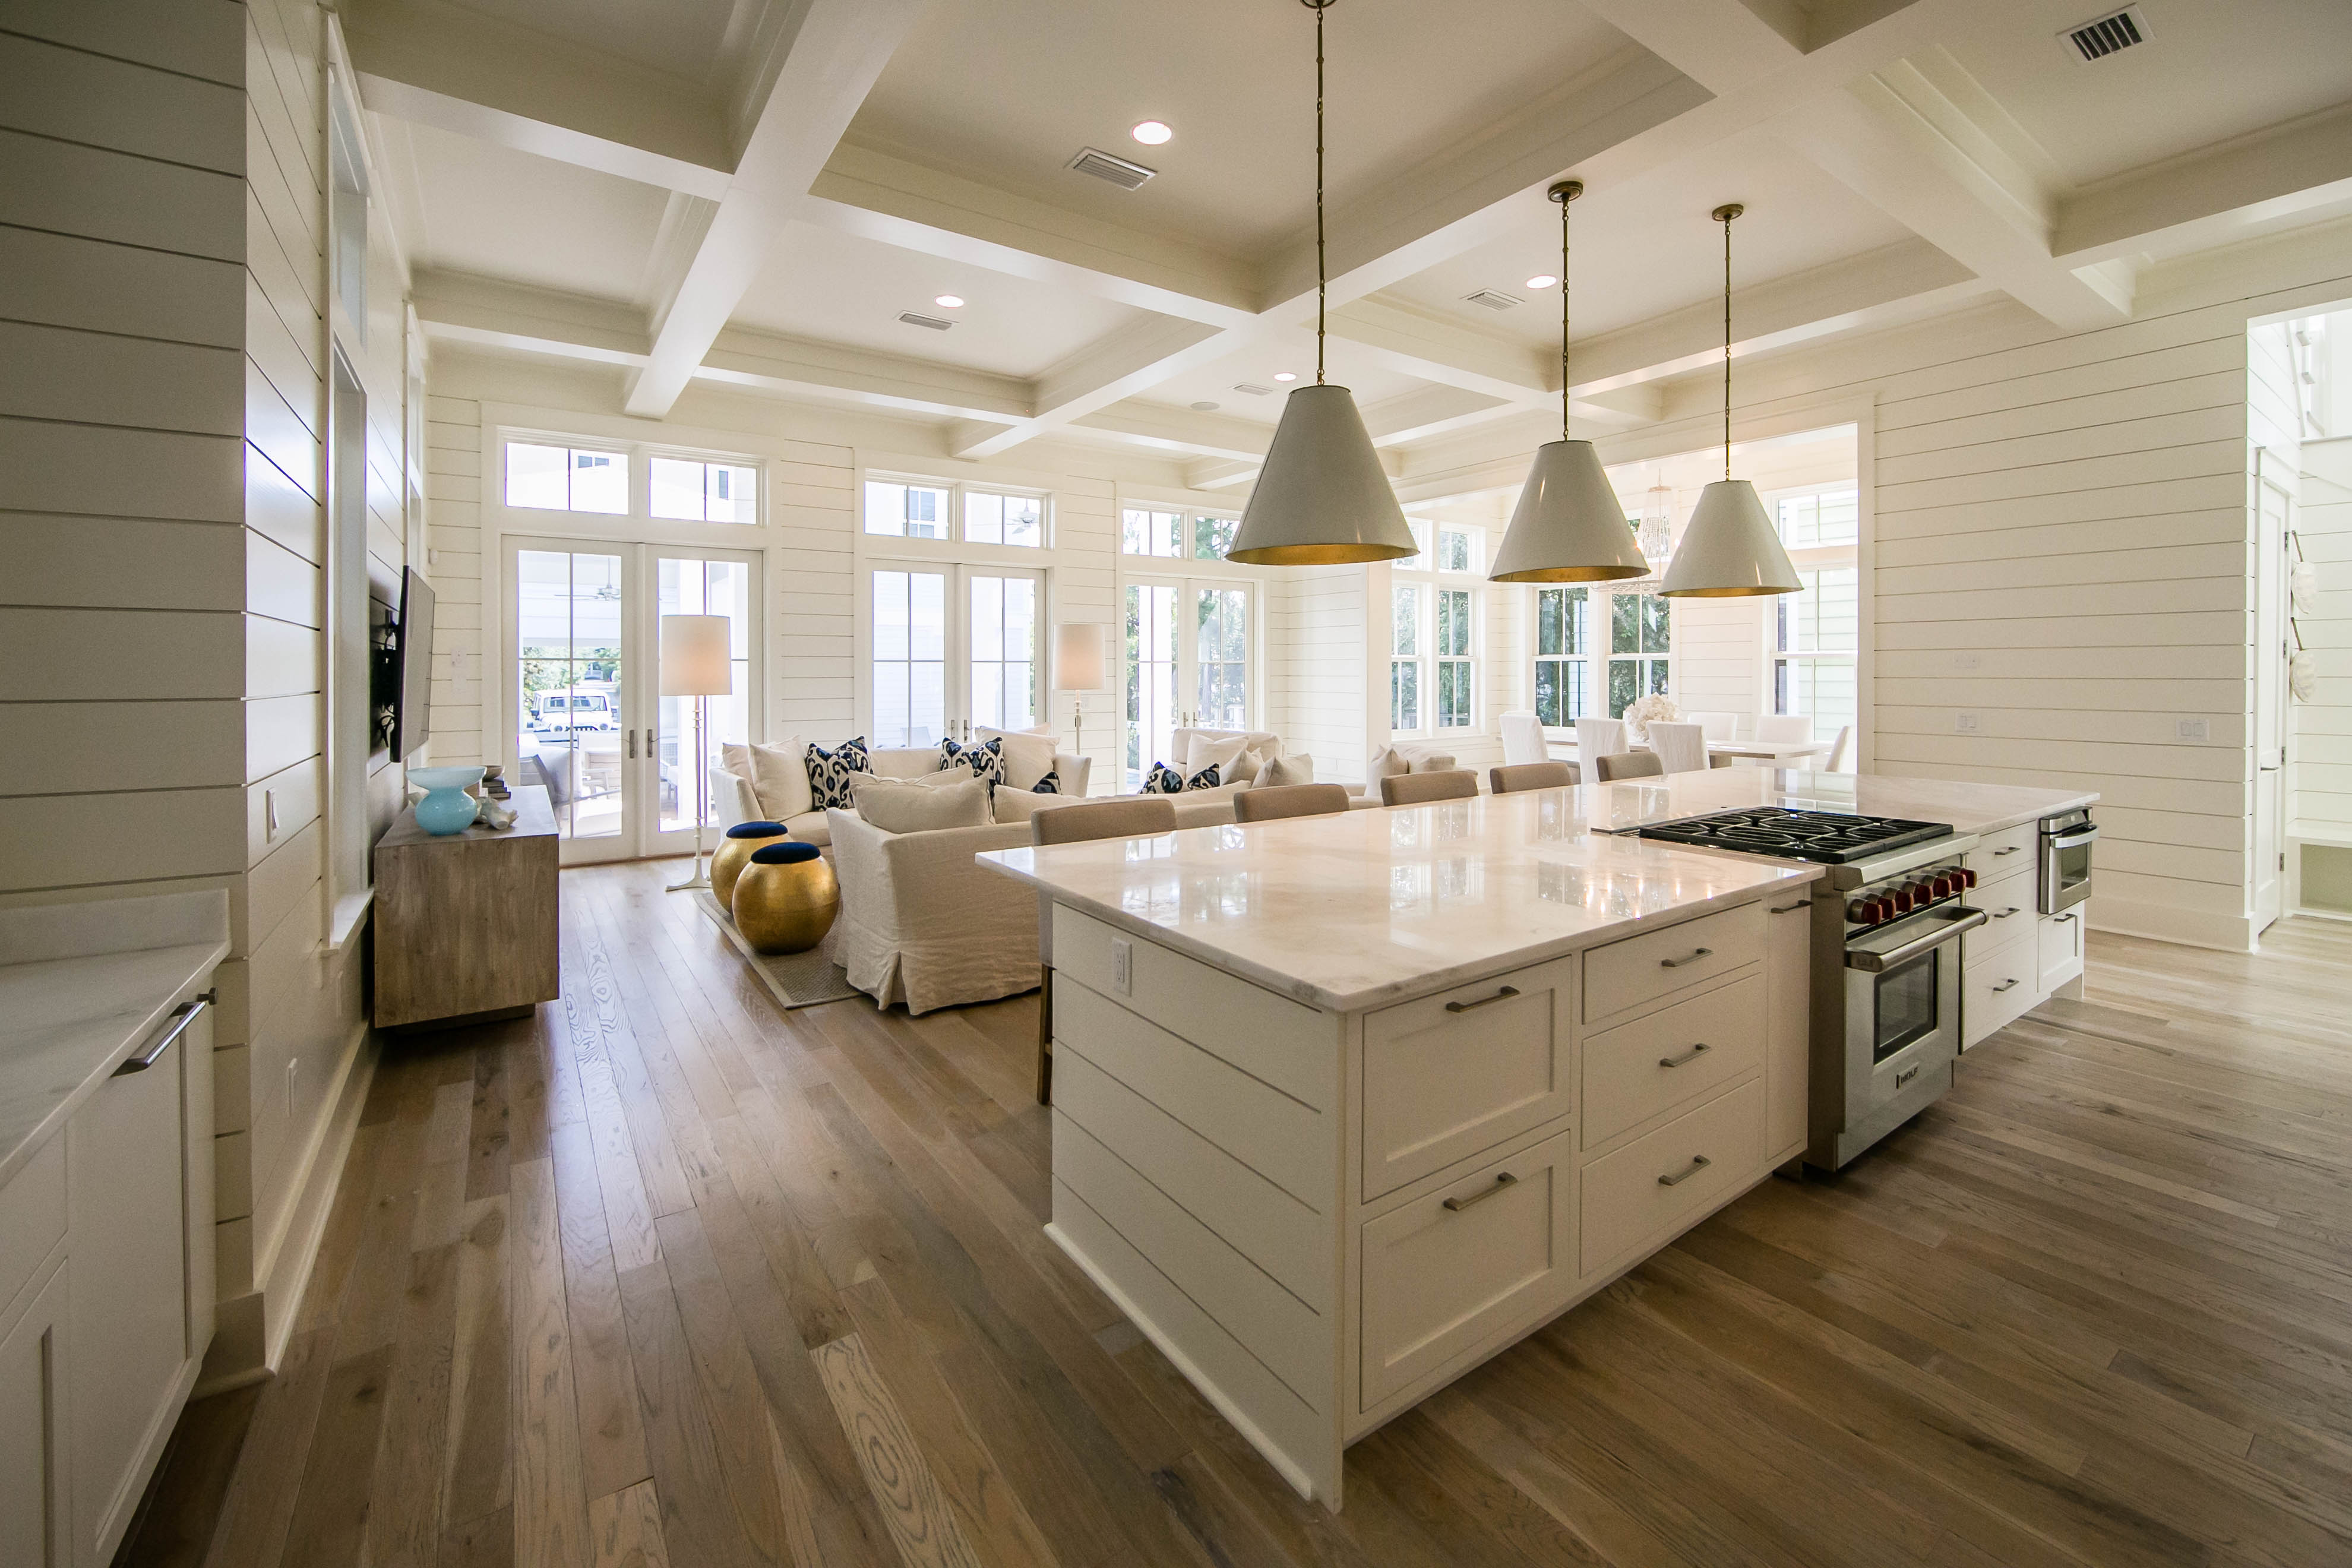 Expansive Kitchen Flowing into the Living Space